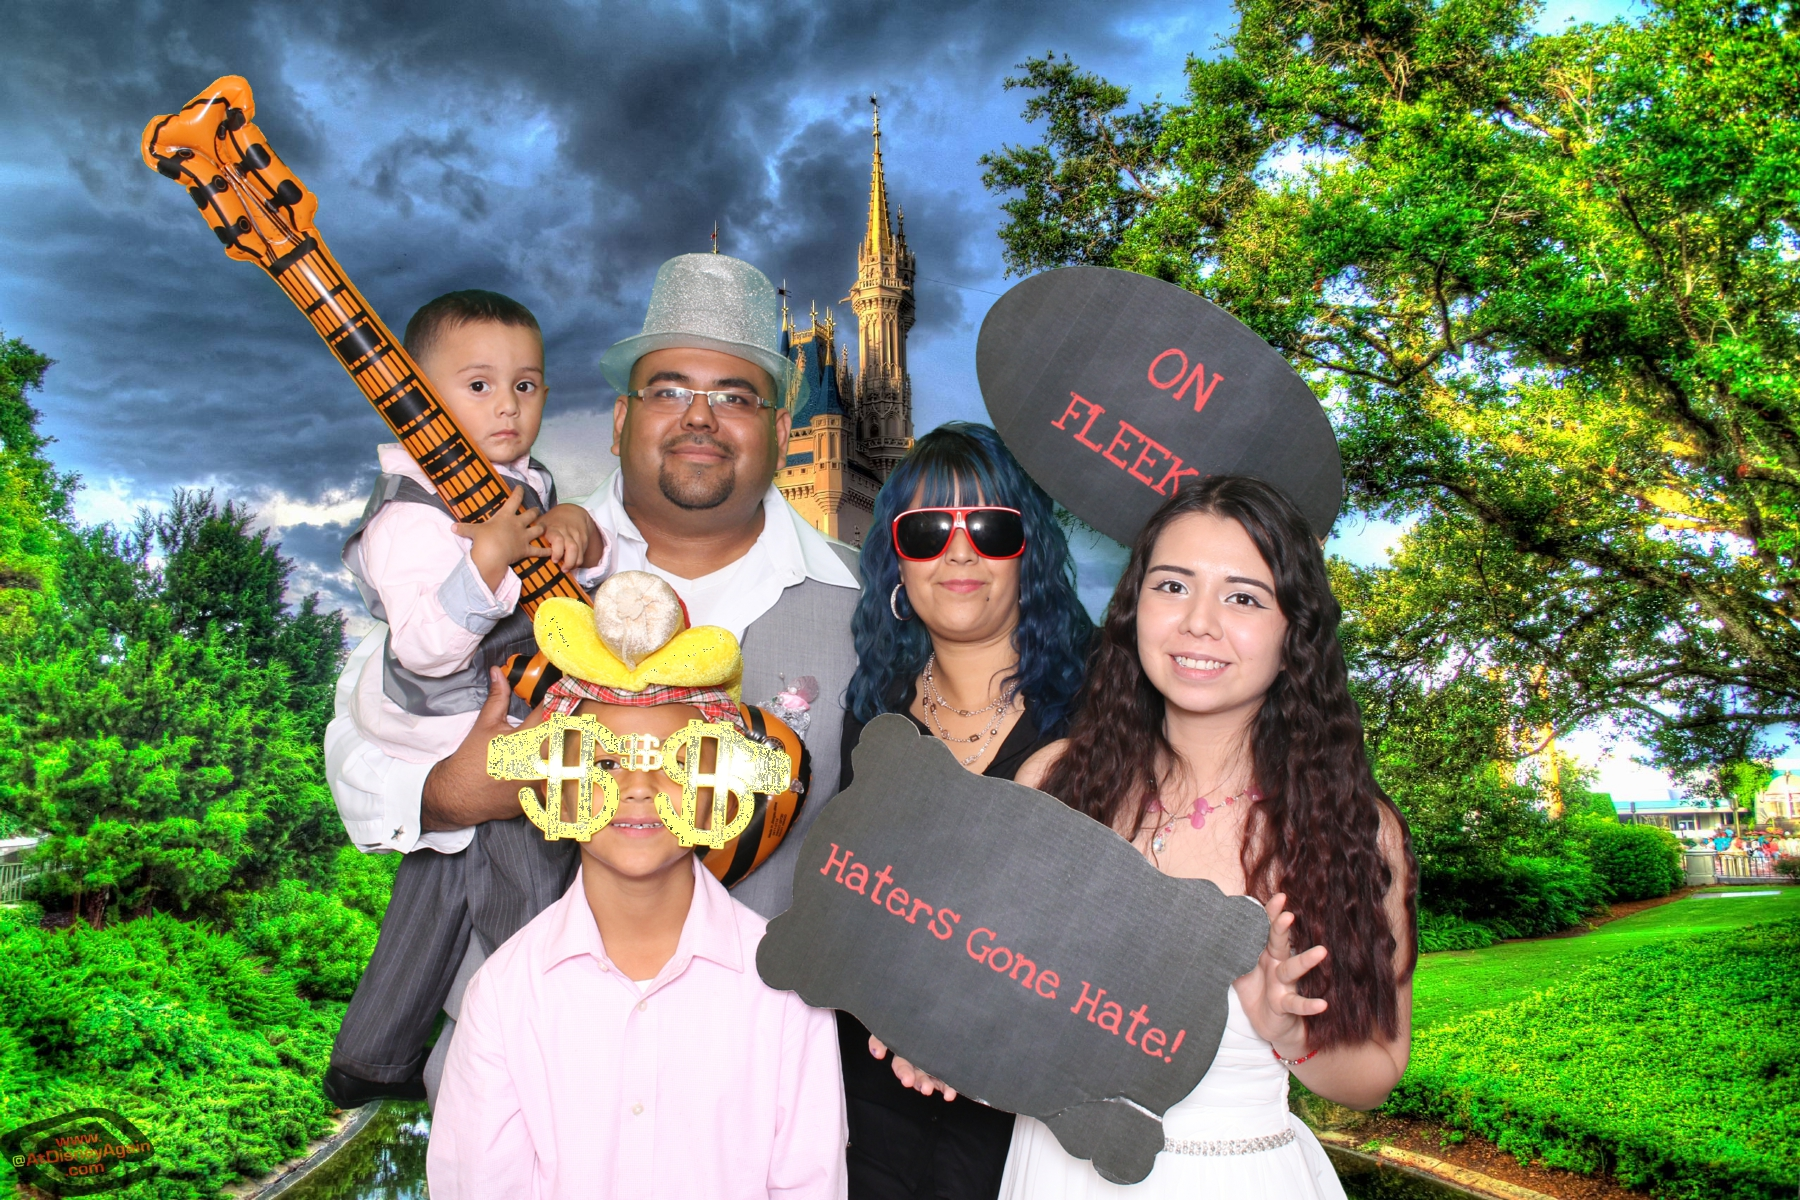 family fun at the selfie station